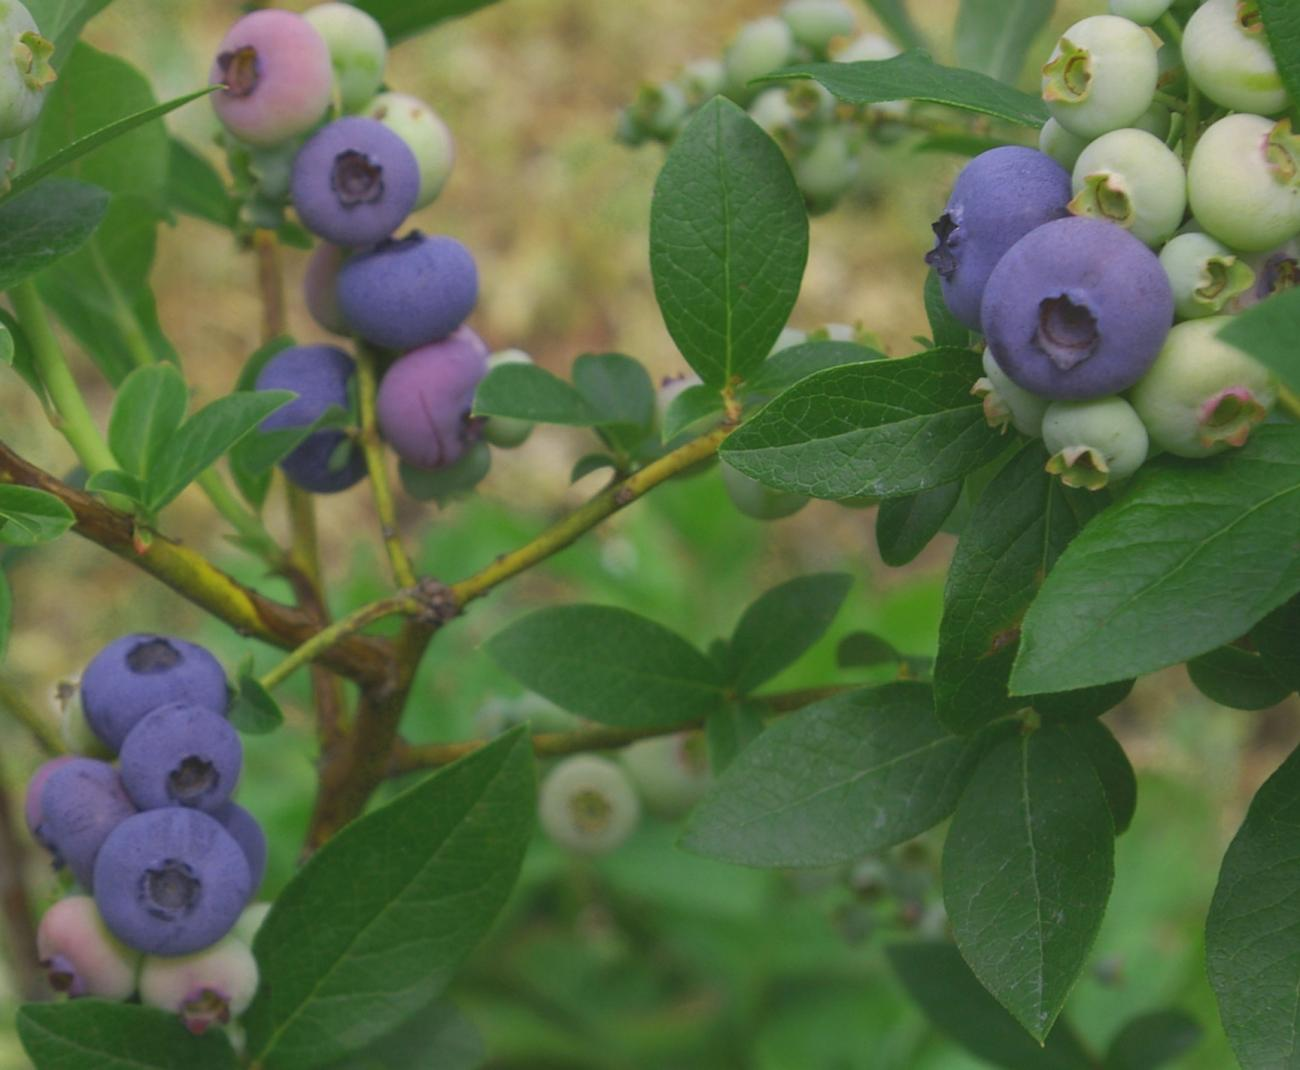 My blueberry shrubs produce prodigiously but I need more for freezing That s why I ll be planting shrubs like this Blue Crop in containers